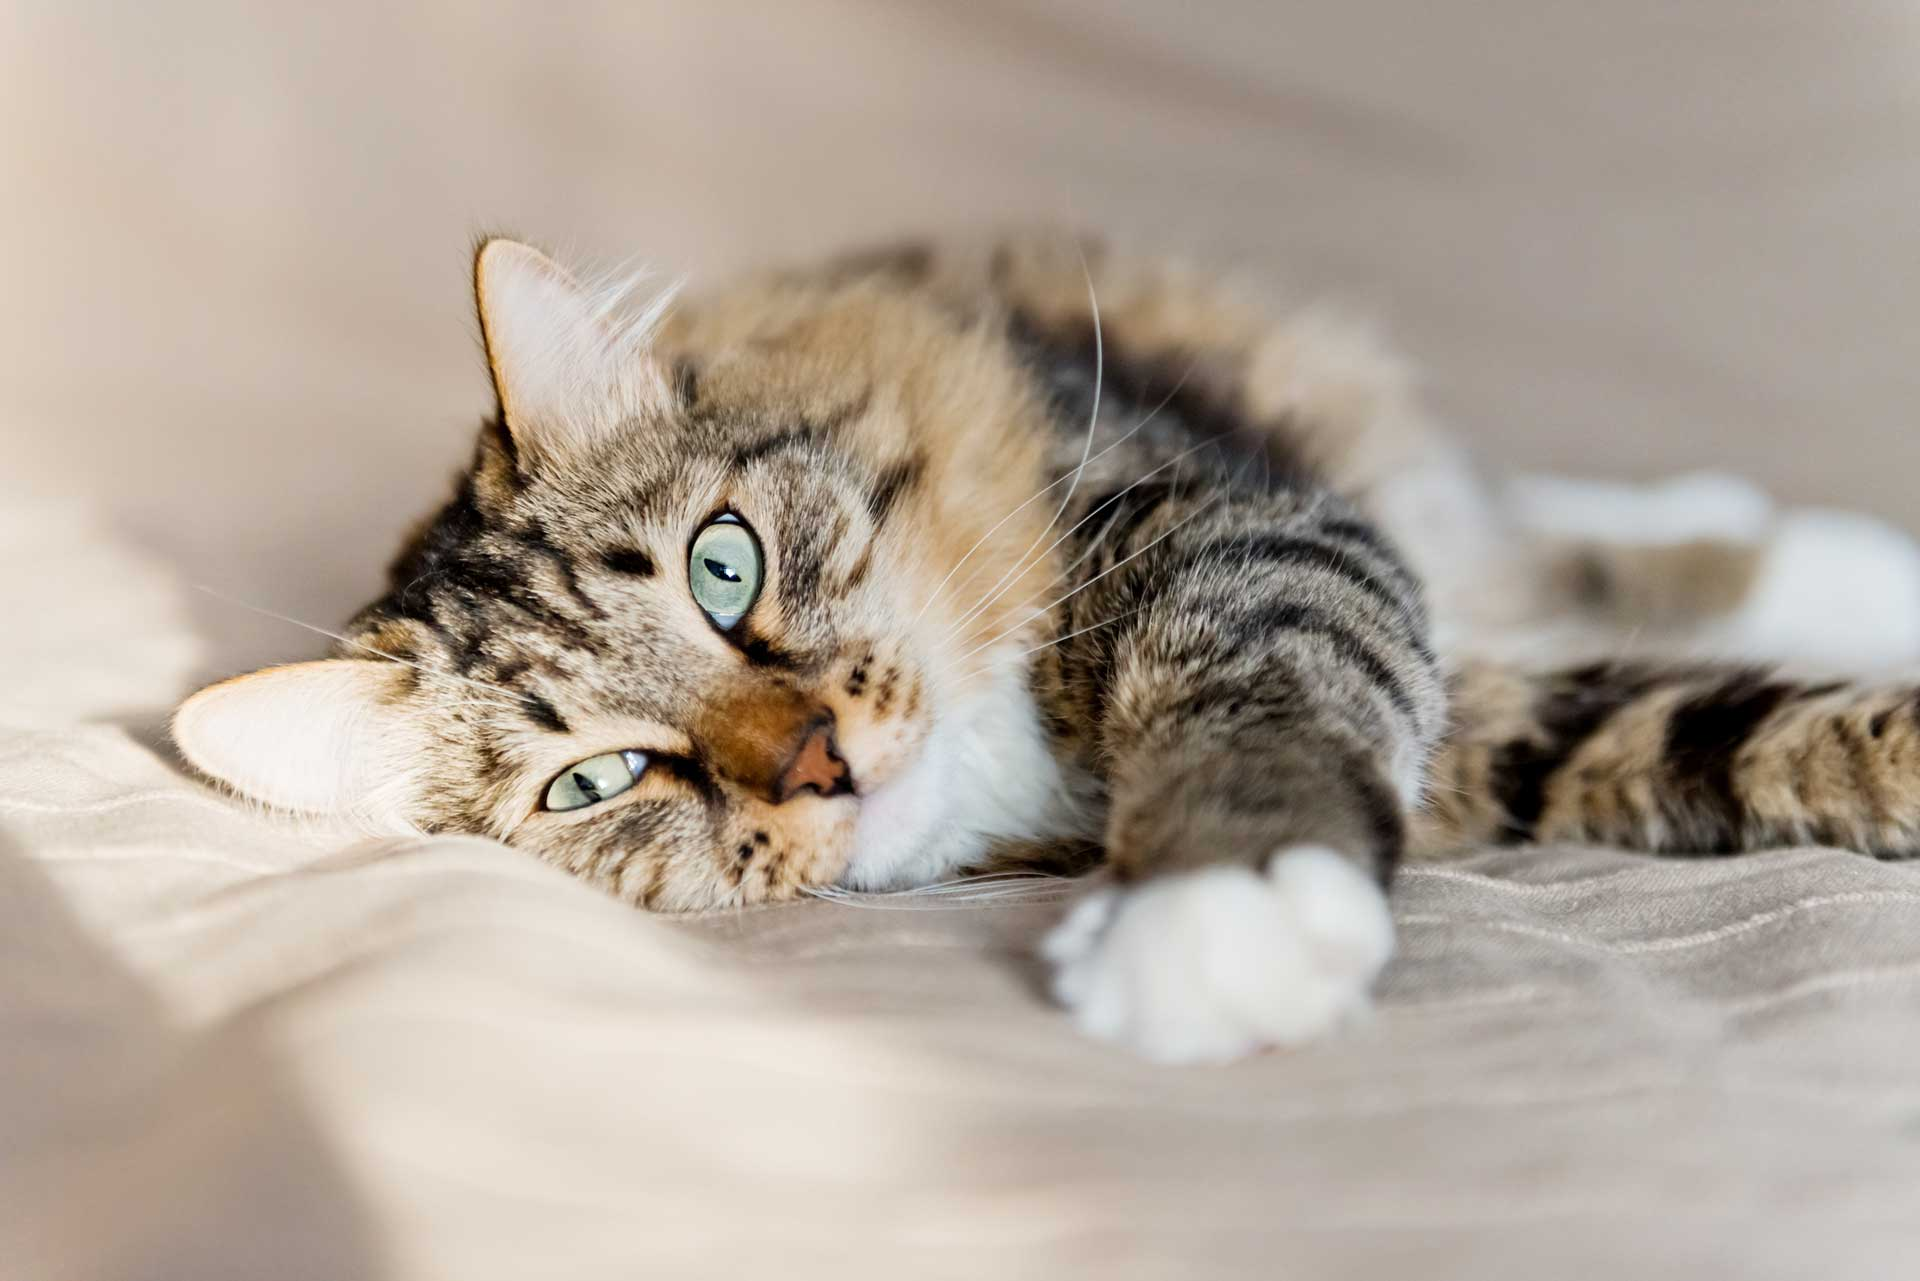 cat urine on sofa cushion palmer rope pet odor removal archives carpet keepers